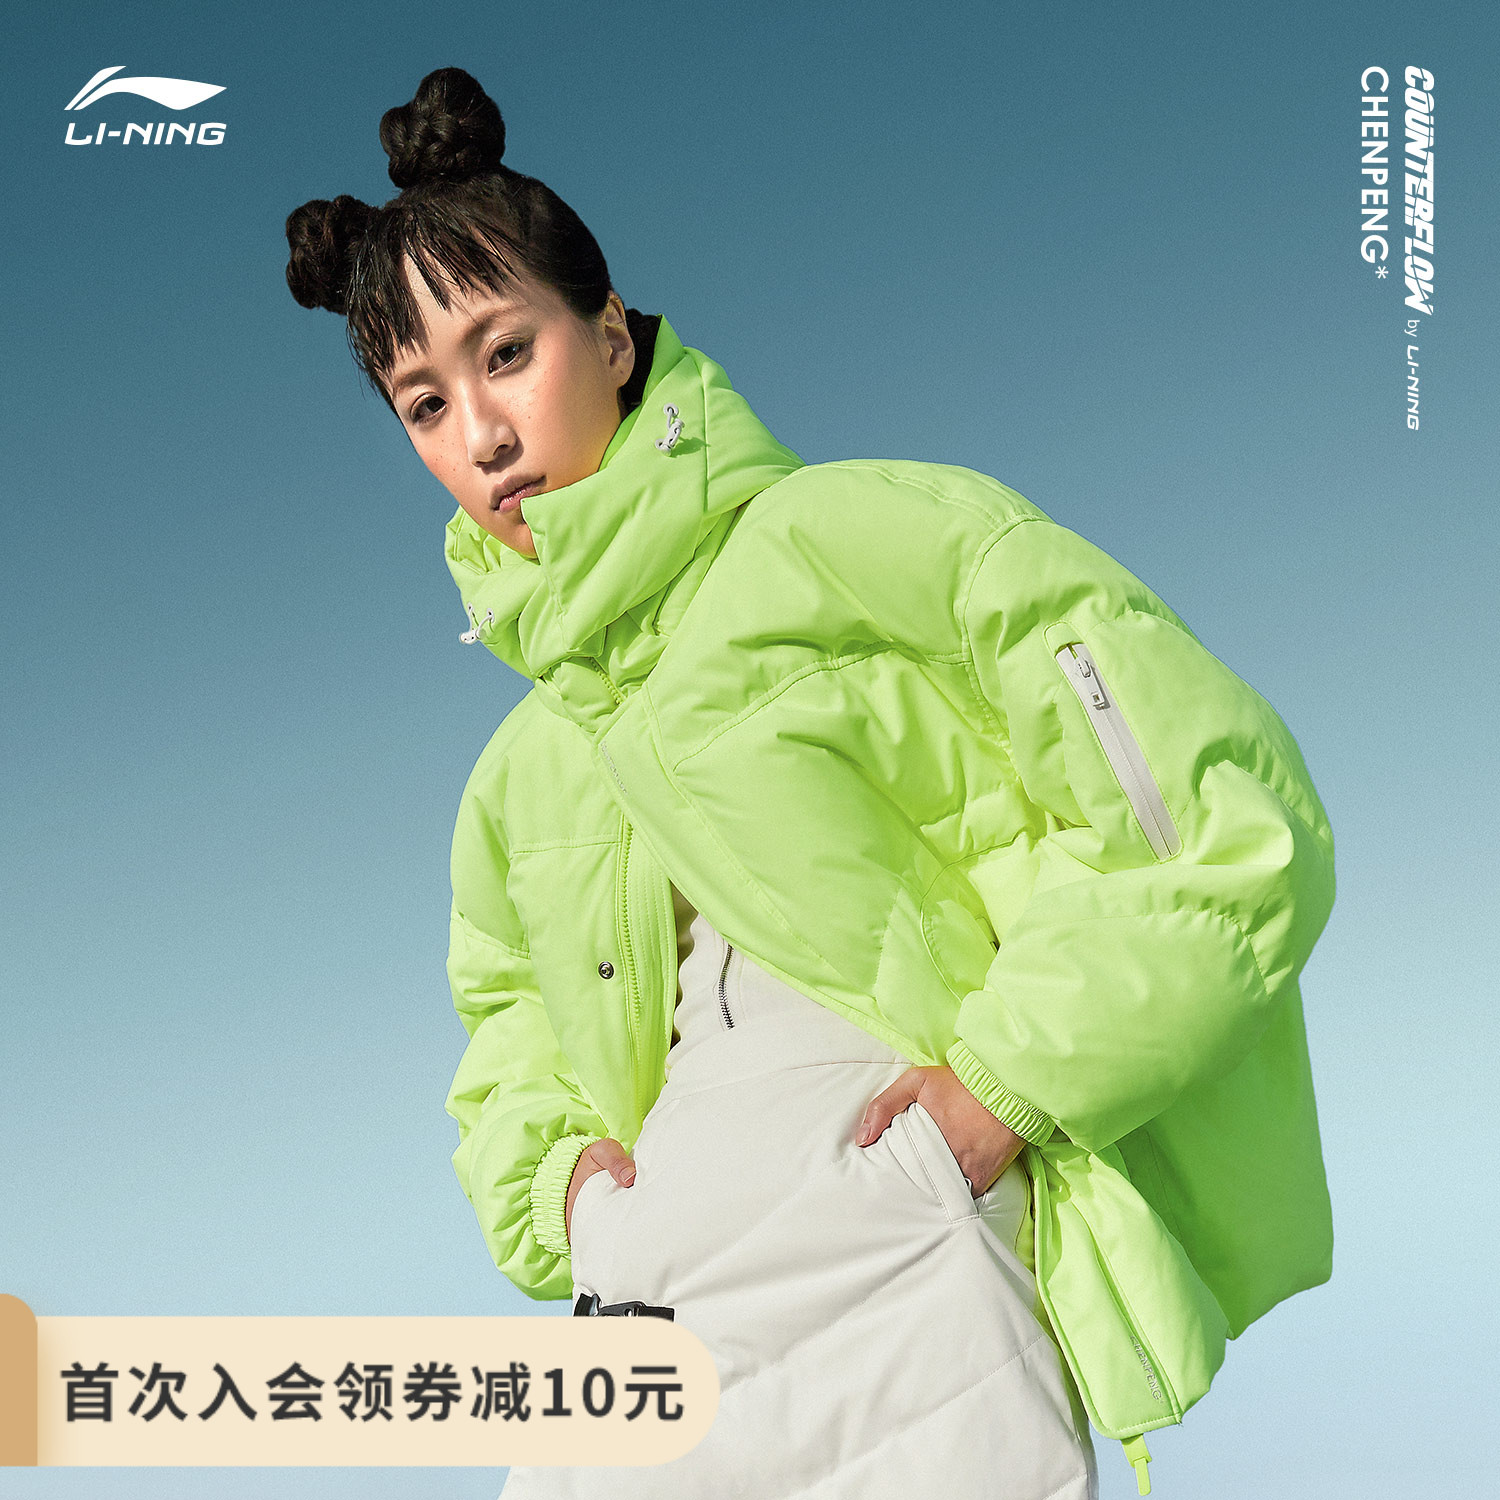 Li Ning short down jacket fashion week show men's and women's Unisex yaobiantianmu loose hooded sportswear